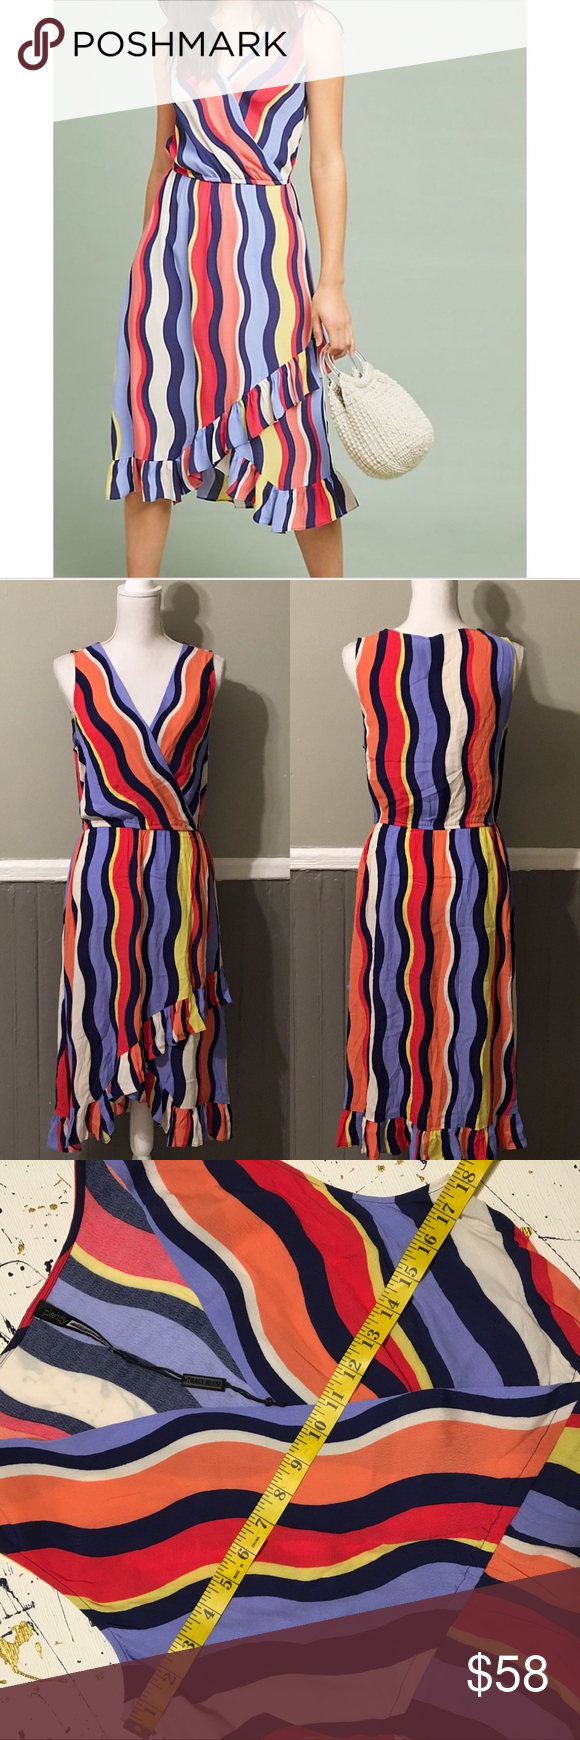 ae4ee4f4d8d ANTHRO Plenty by Tracy Reese Daphne Wrap Dress Size M  Has small stains. (